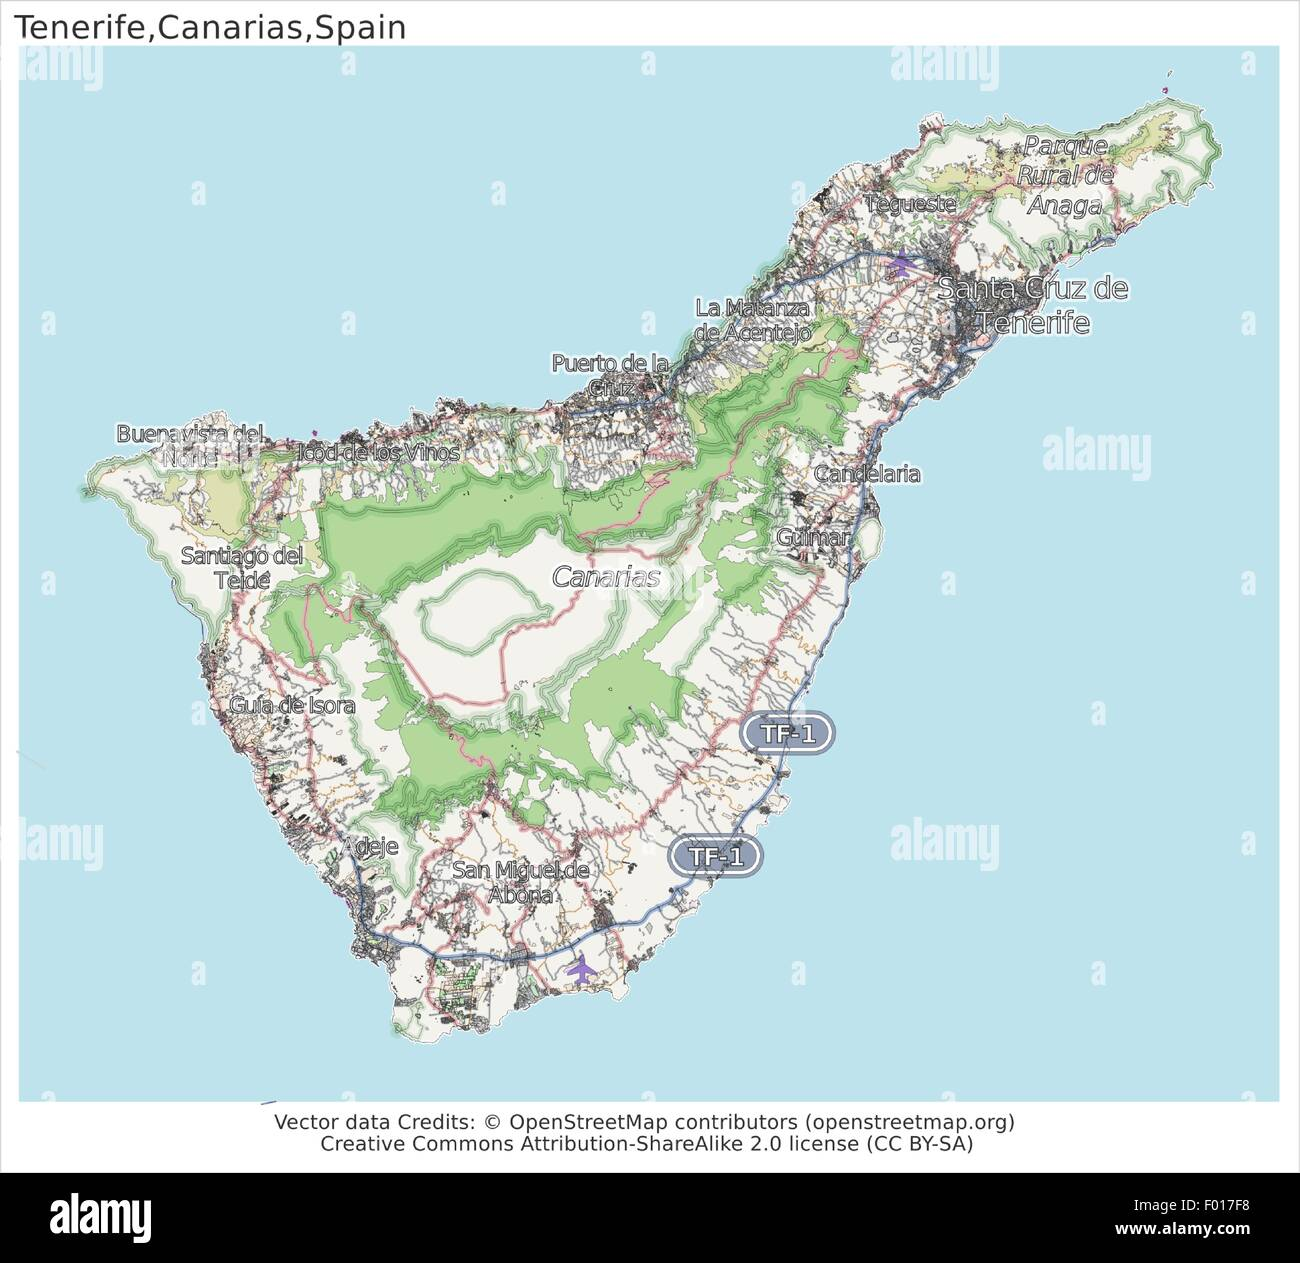 Map Of Spain Tenerife.Tenerife Canarias Islands Spain City Map Aerial View Stock Vector